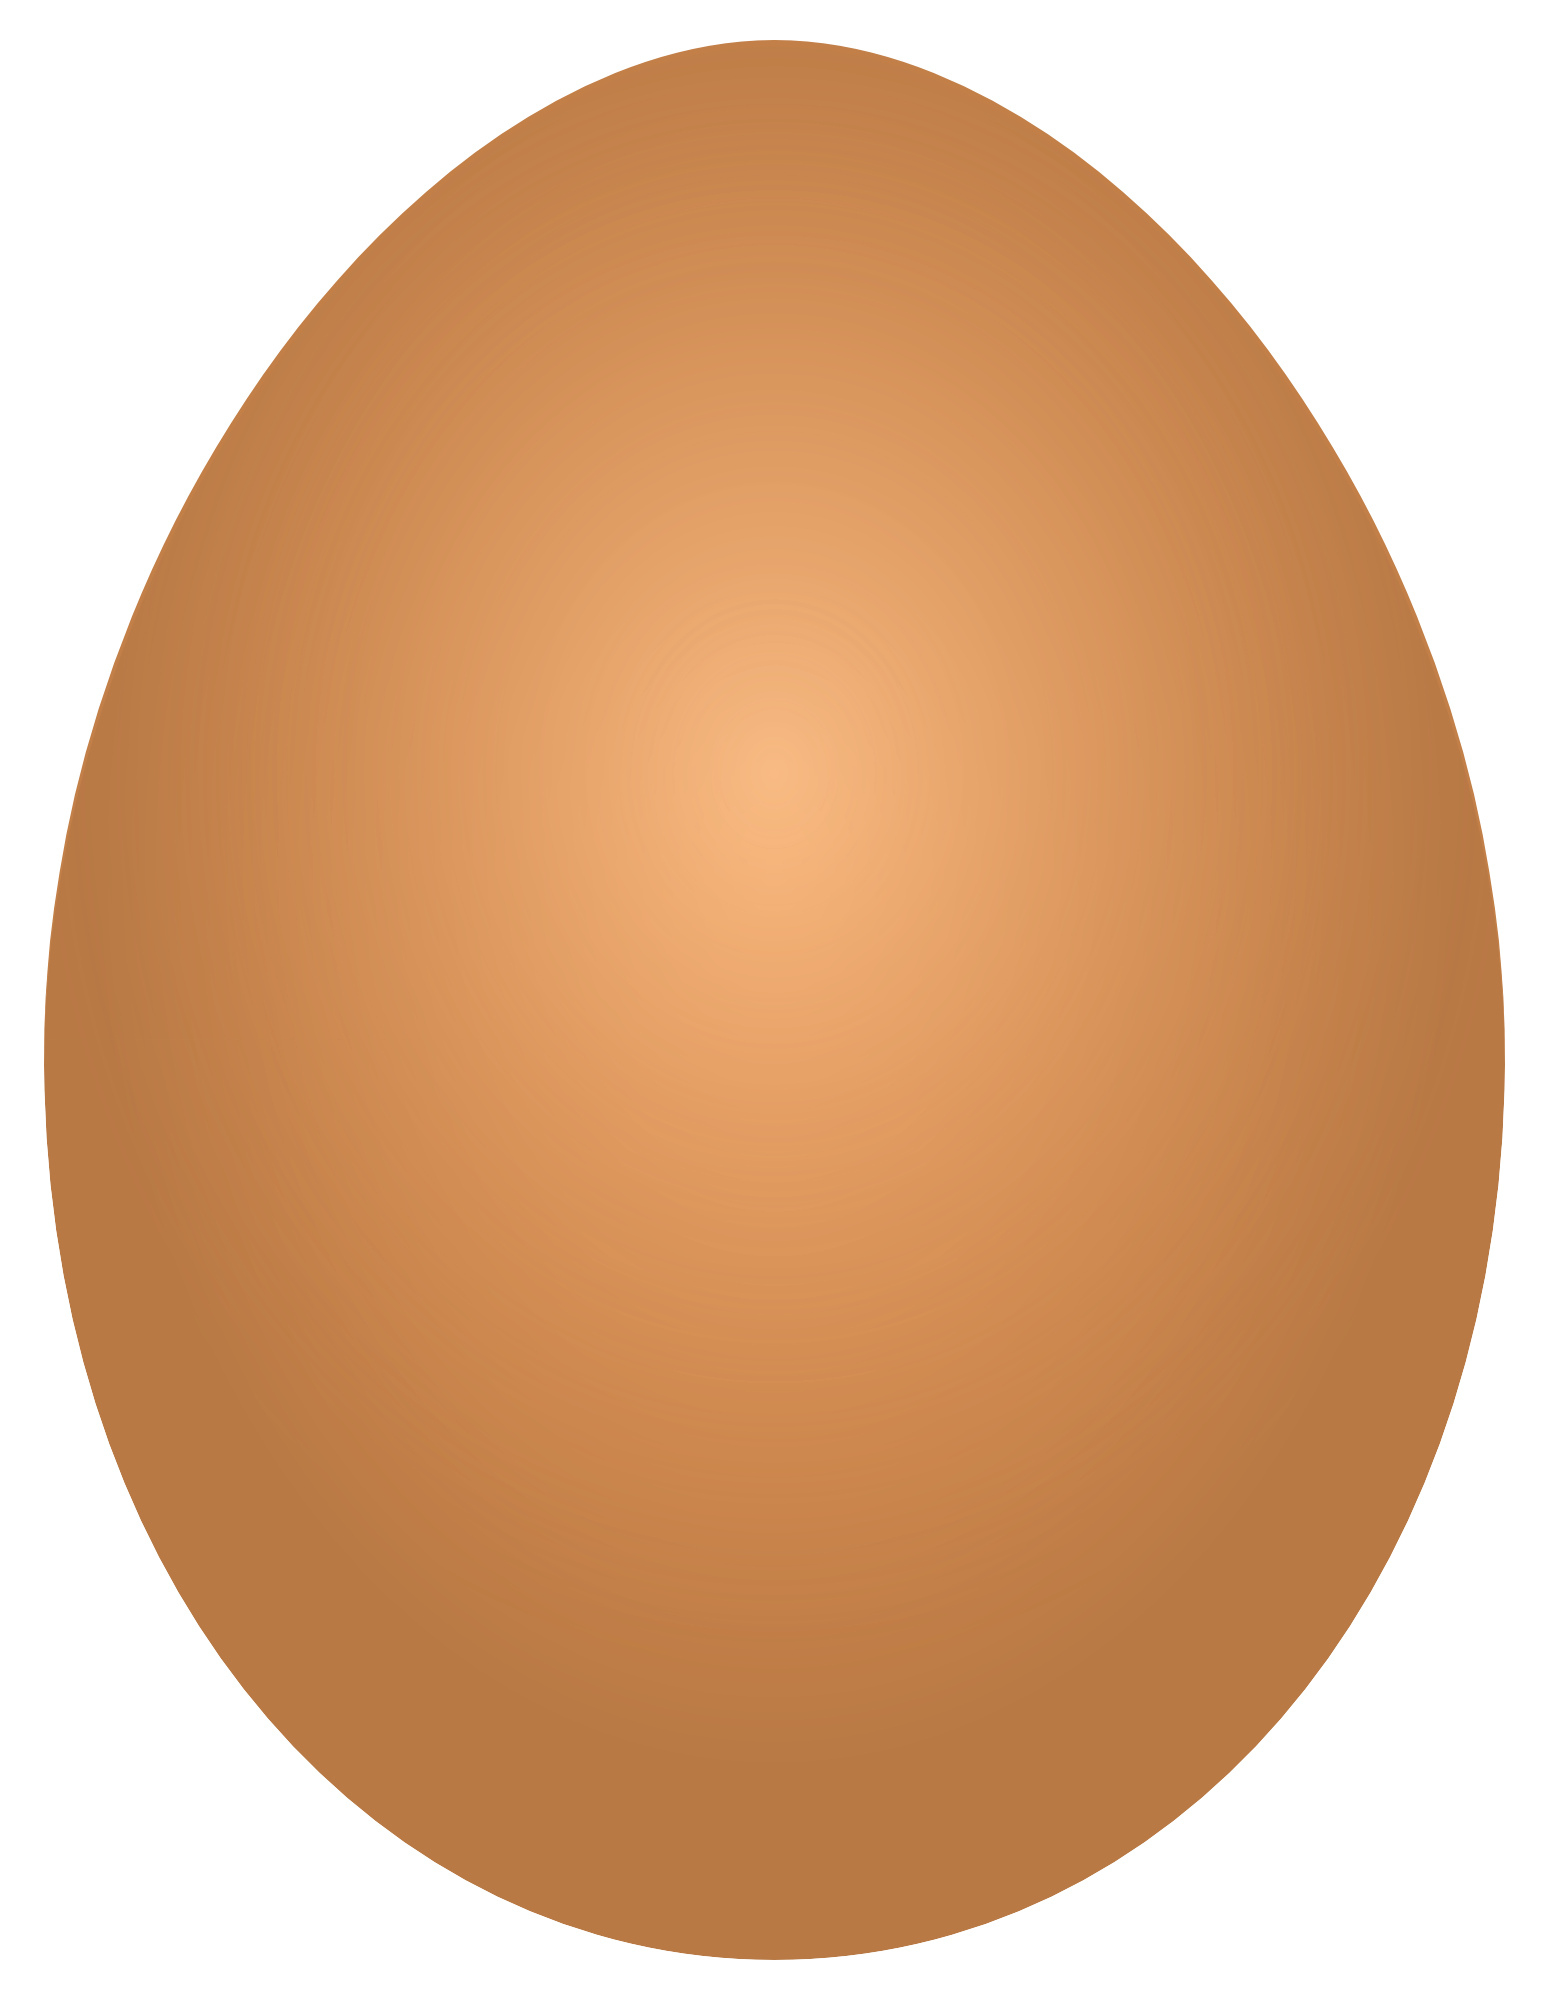 Cracked Egg PNG HD - 135662